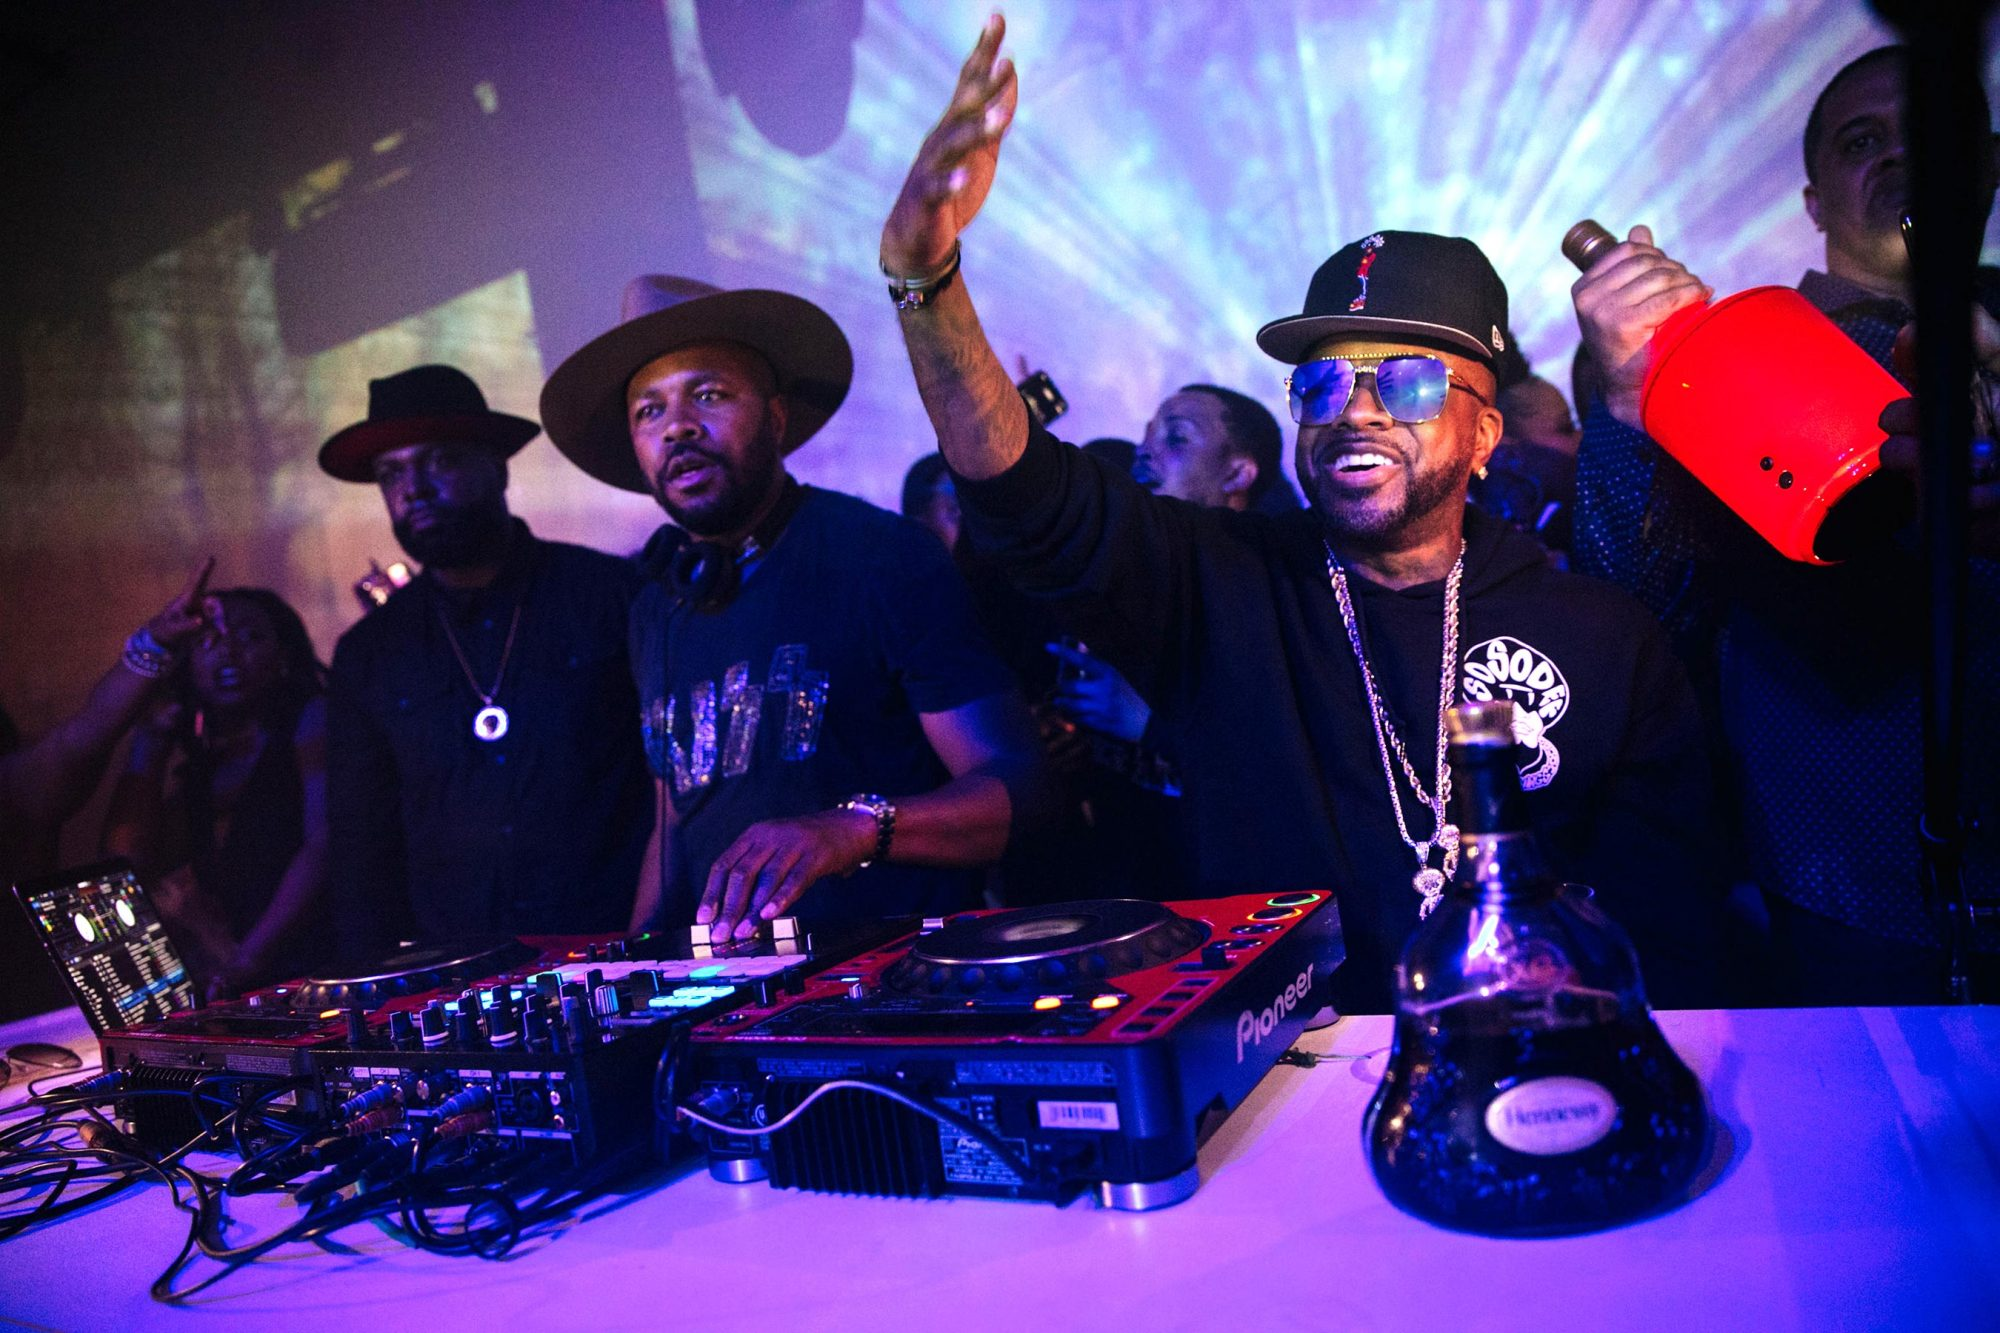 Jermaine Dupri and Hennessy celebrate those who Never Stop. Never Settle. during an exclusive Hennessy experience, DJ'd by D Nice, on Saturday in Atlanta. Credit: Lauren Cowart